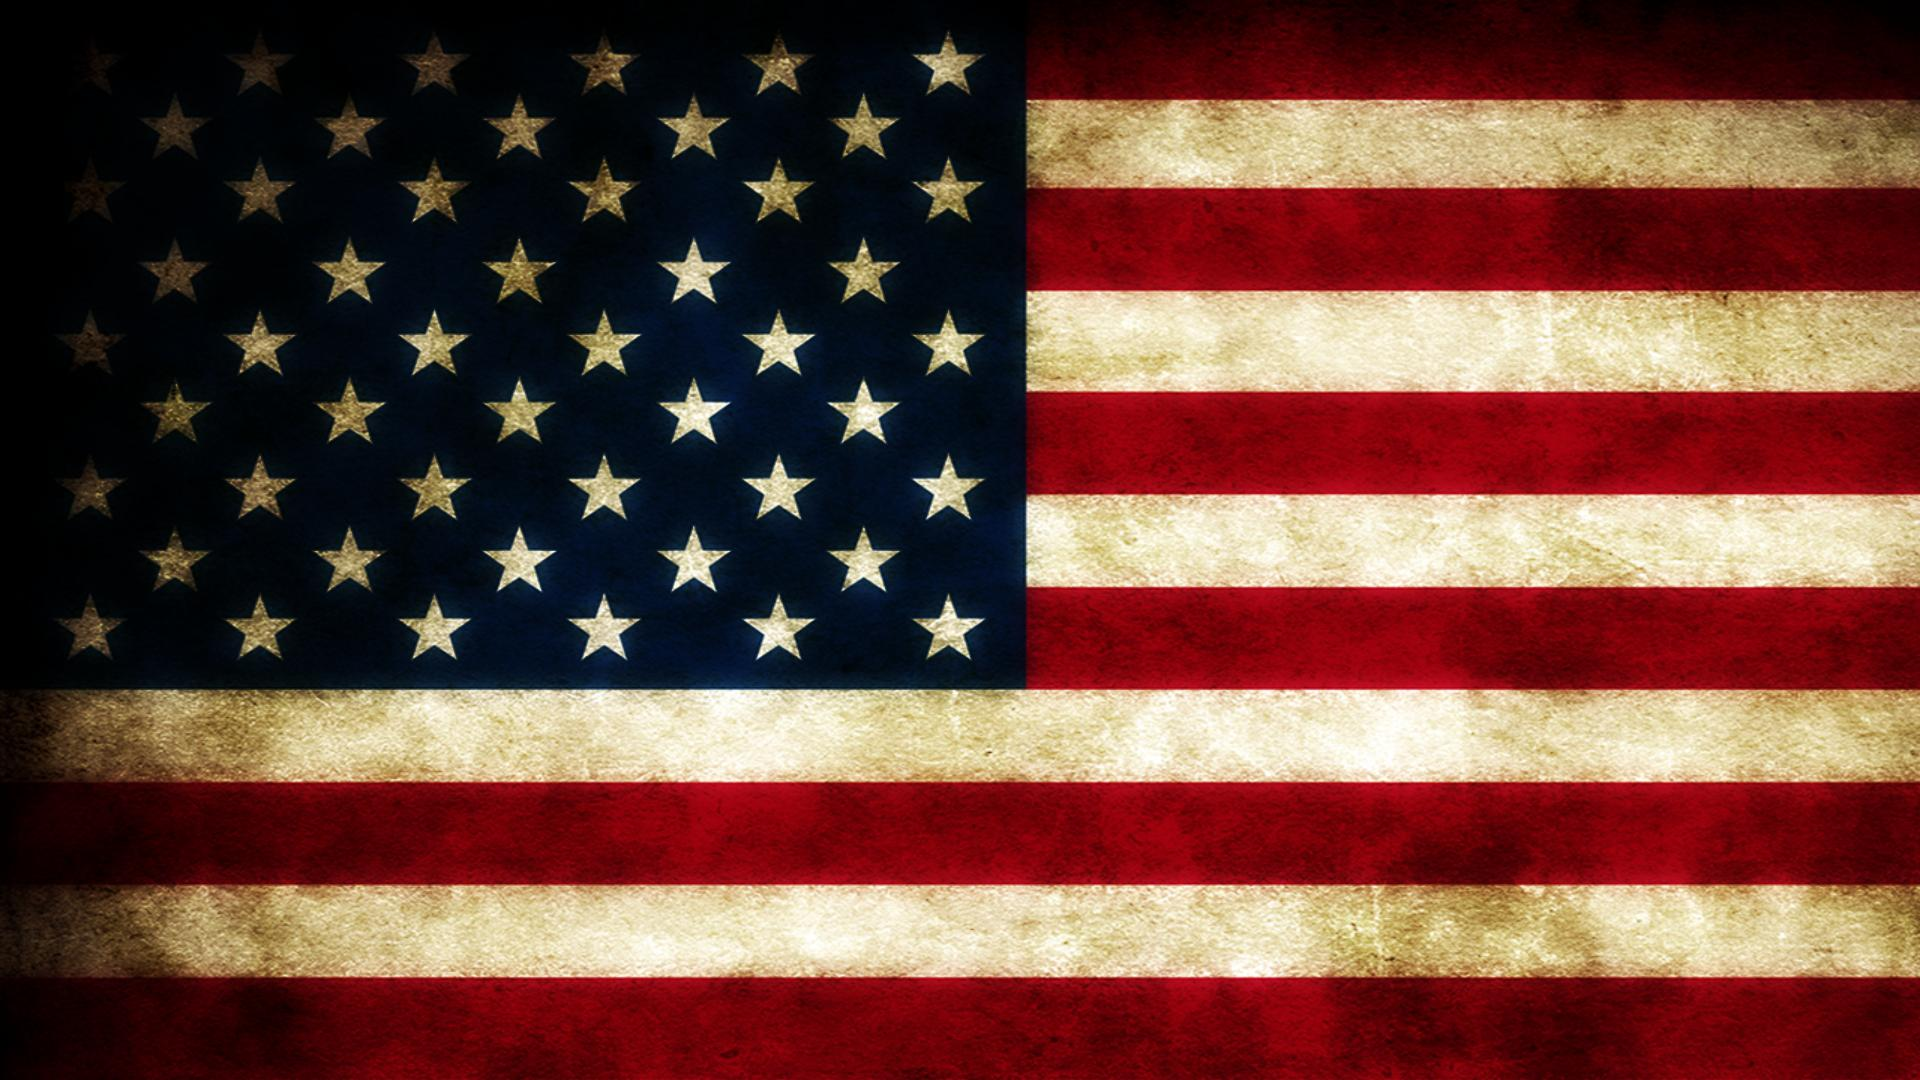 Red White And Blue Wallpaper Sf Wallpaper